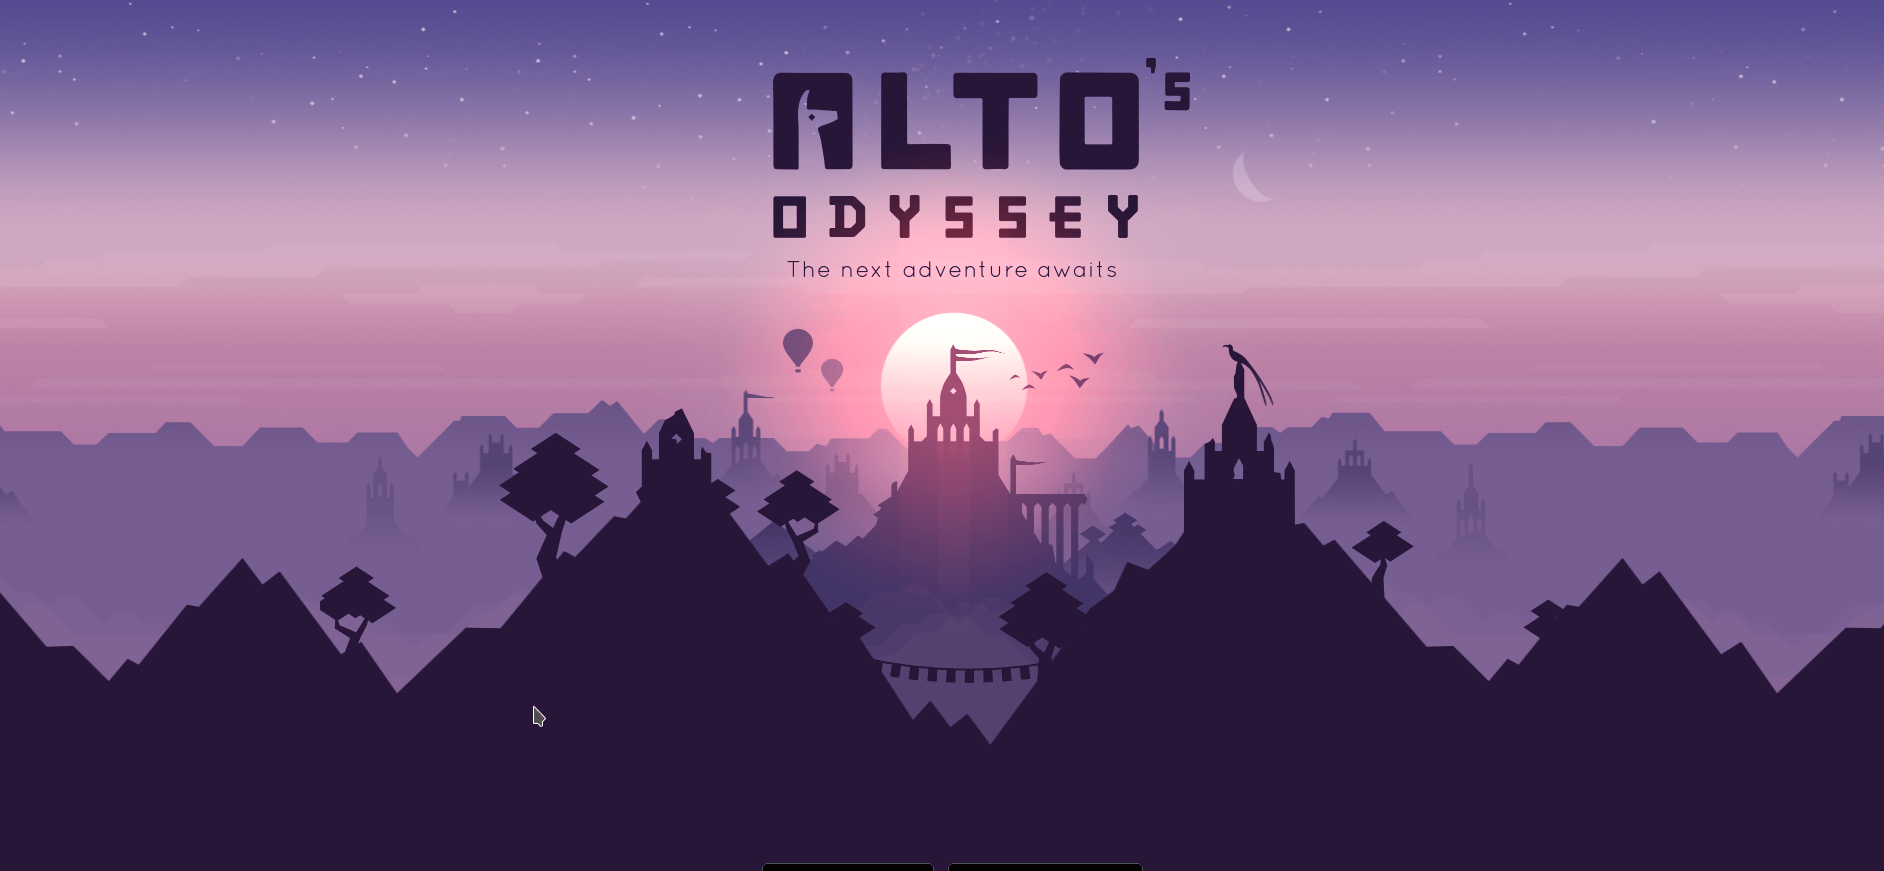 Alto's Odyssey - Best Android Games